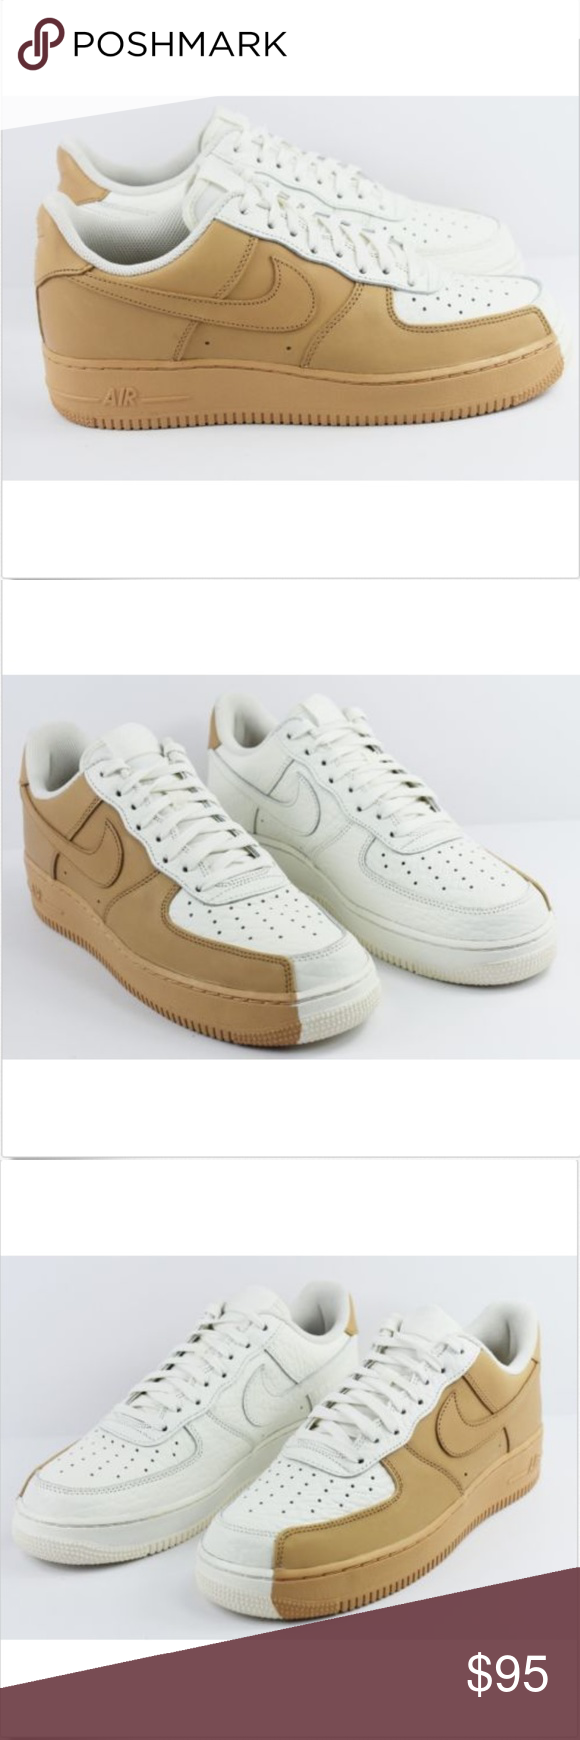 online store 249fd d5c01 NIke Air Force 1  07 PRM Size 10 Shoes Premium New without box NIke Air